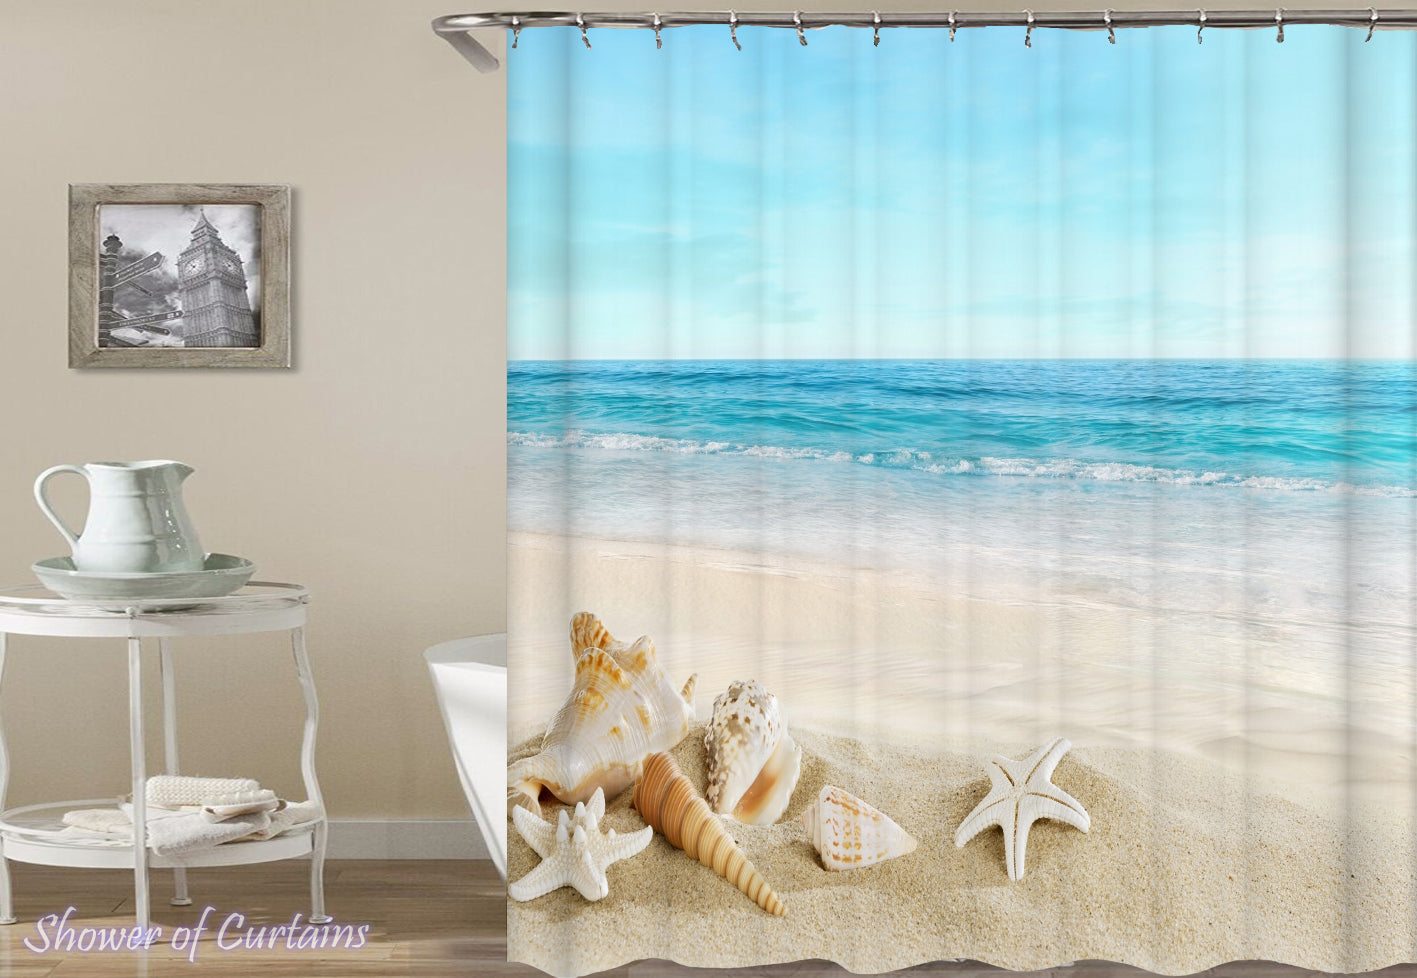 Shower Curtain Of Seashells With A Beach View